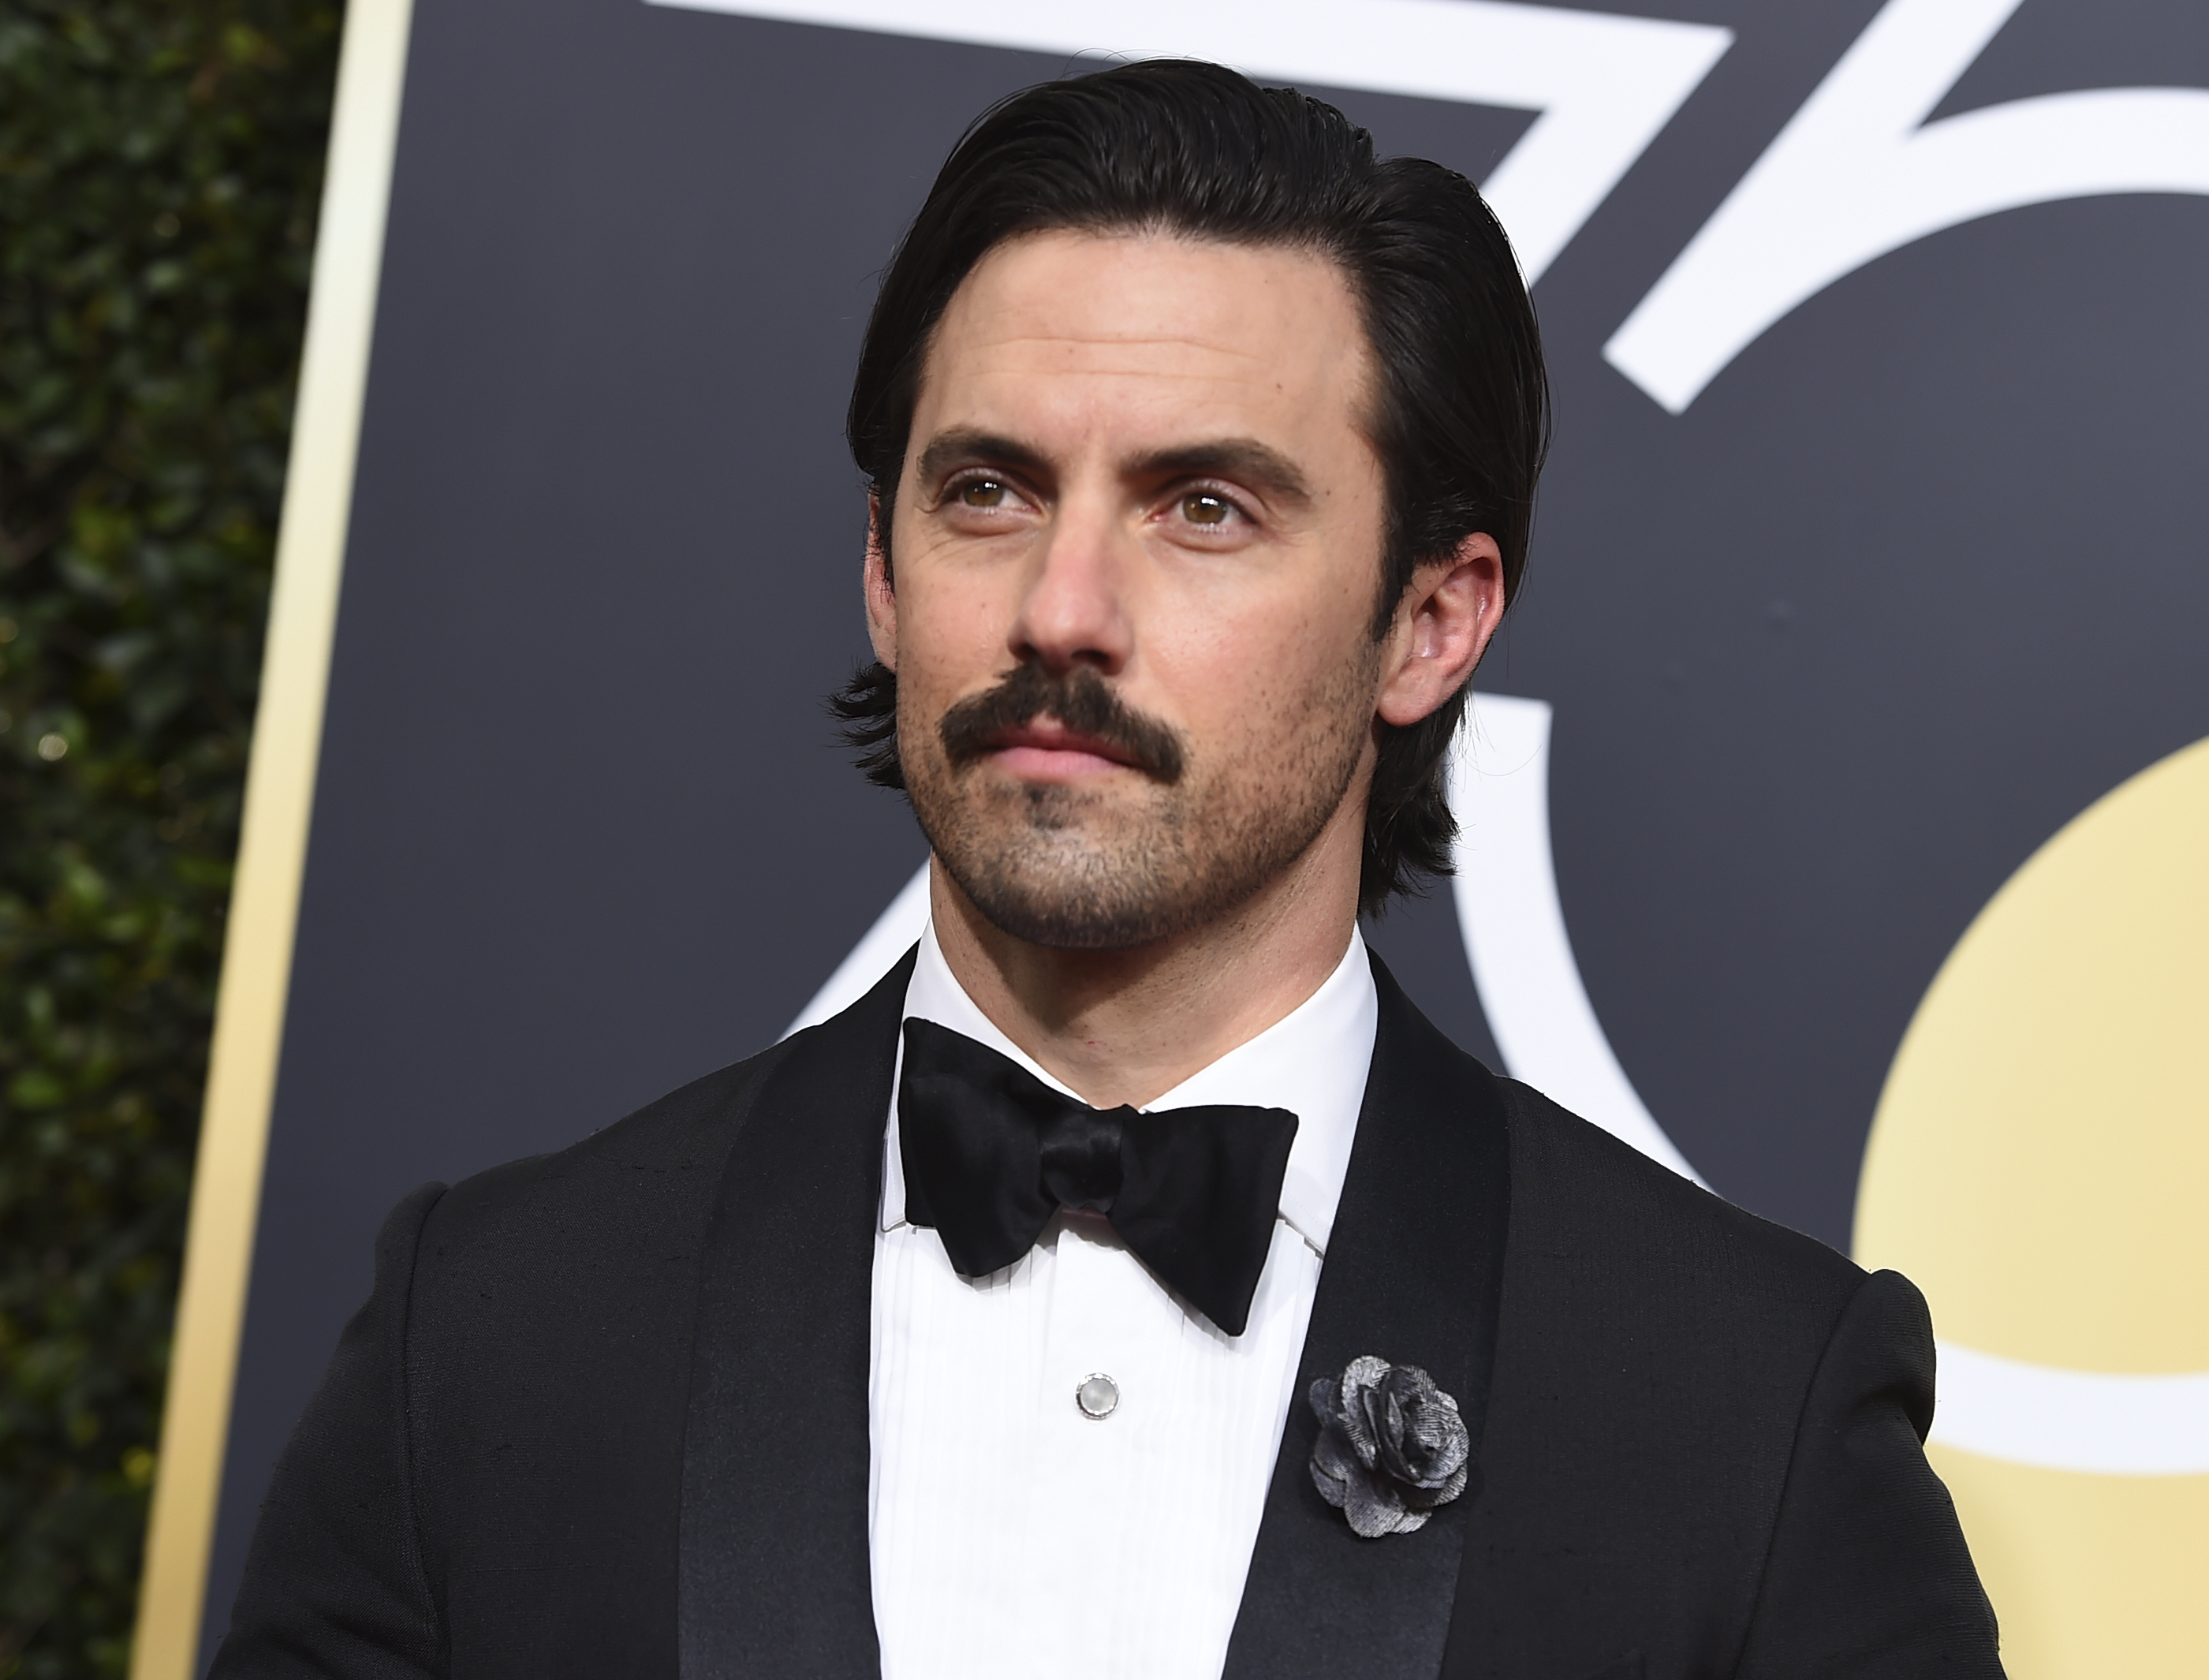 <div class='meta'><div class='origin-logo' data-origin='AP'></div><span class='caption-text' data-credit='Jordan Strauss/Invision/AP'>Milo Ventimiglia arrives at the 75th annual Golden Globe Awards at the Beverly Hilton Hotel on Sunday, Jan. 7, 2018, in Beverly Hills, Calif.</span></div>